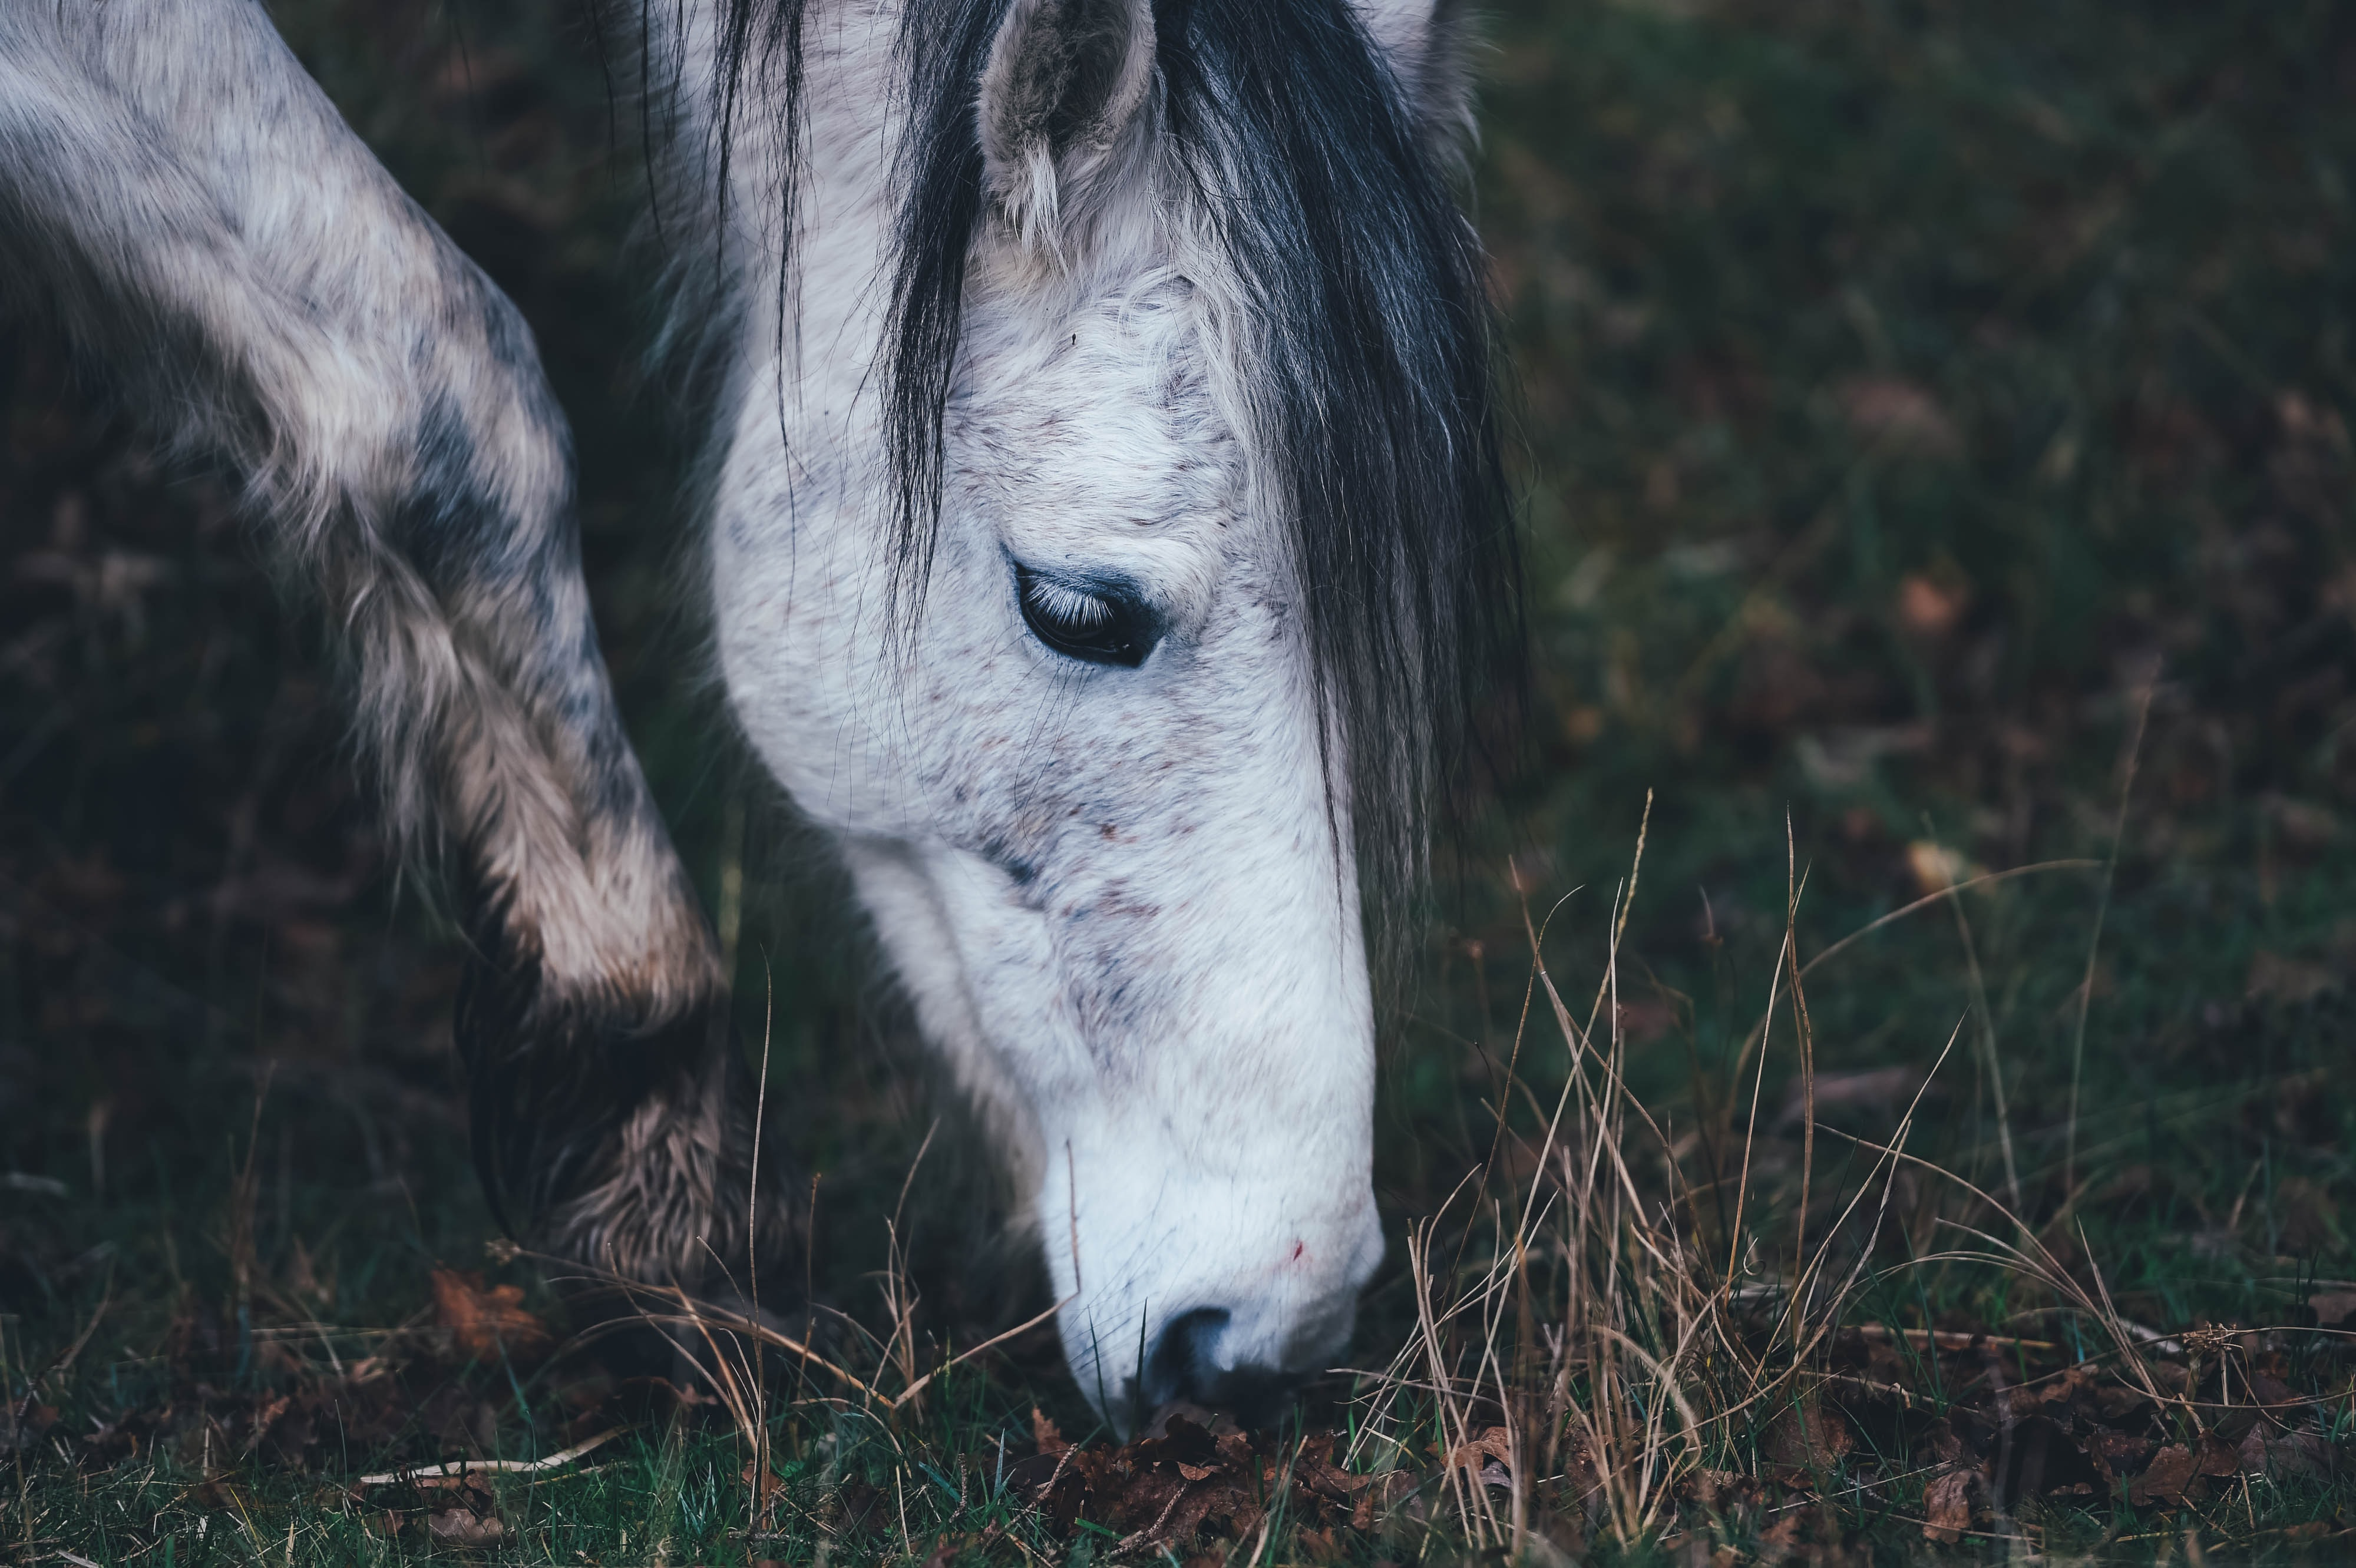 white and black horse eating grass